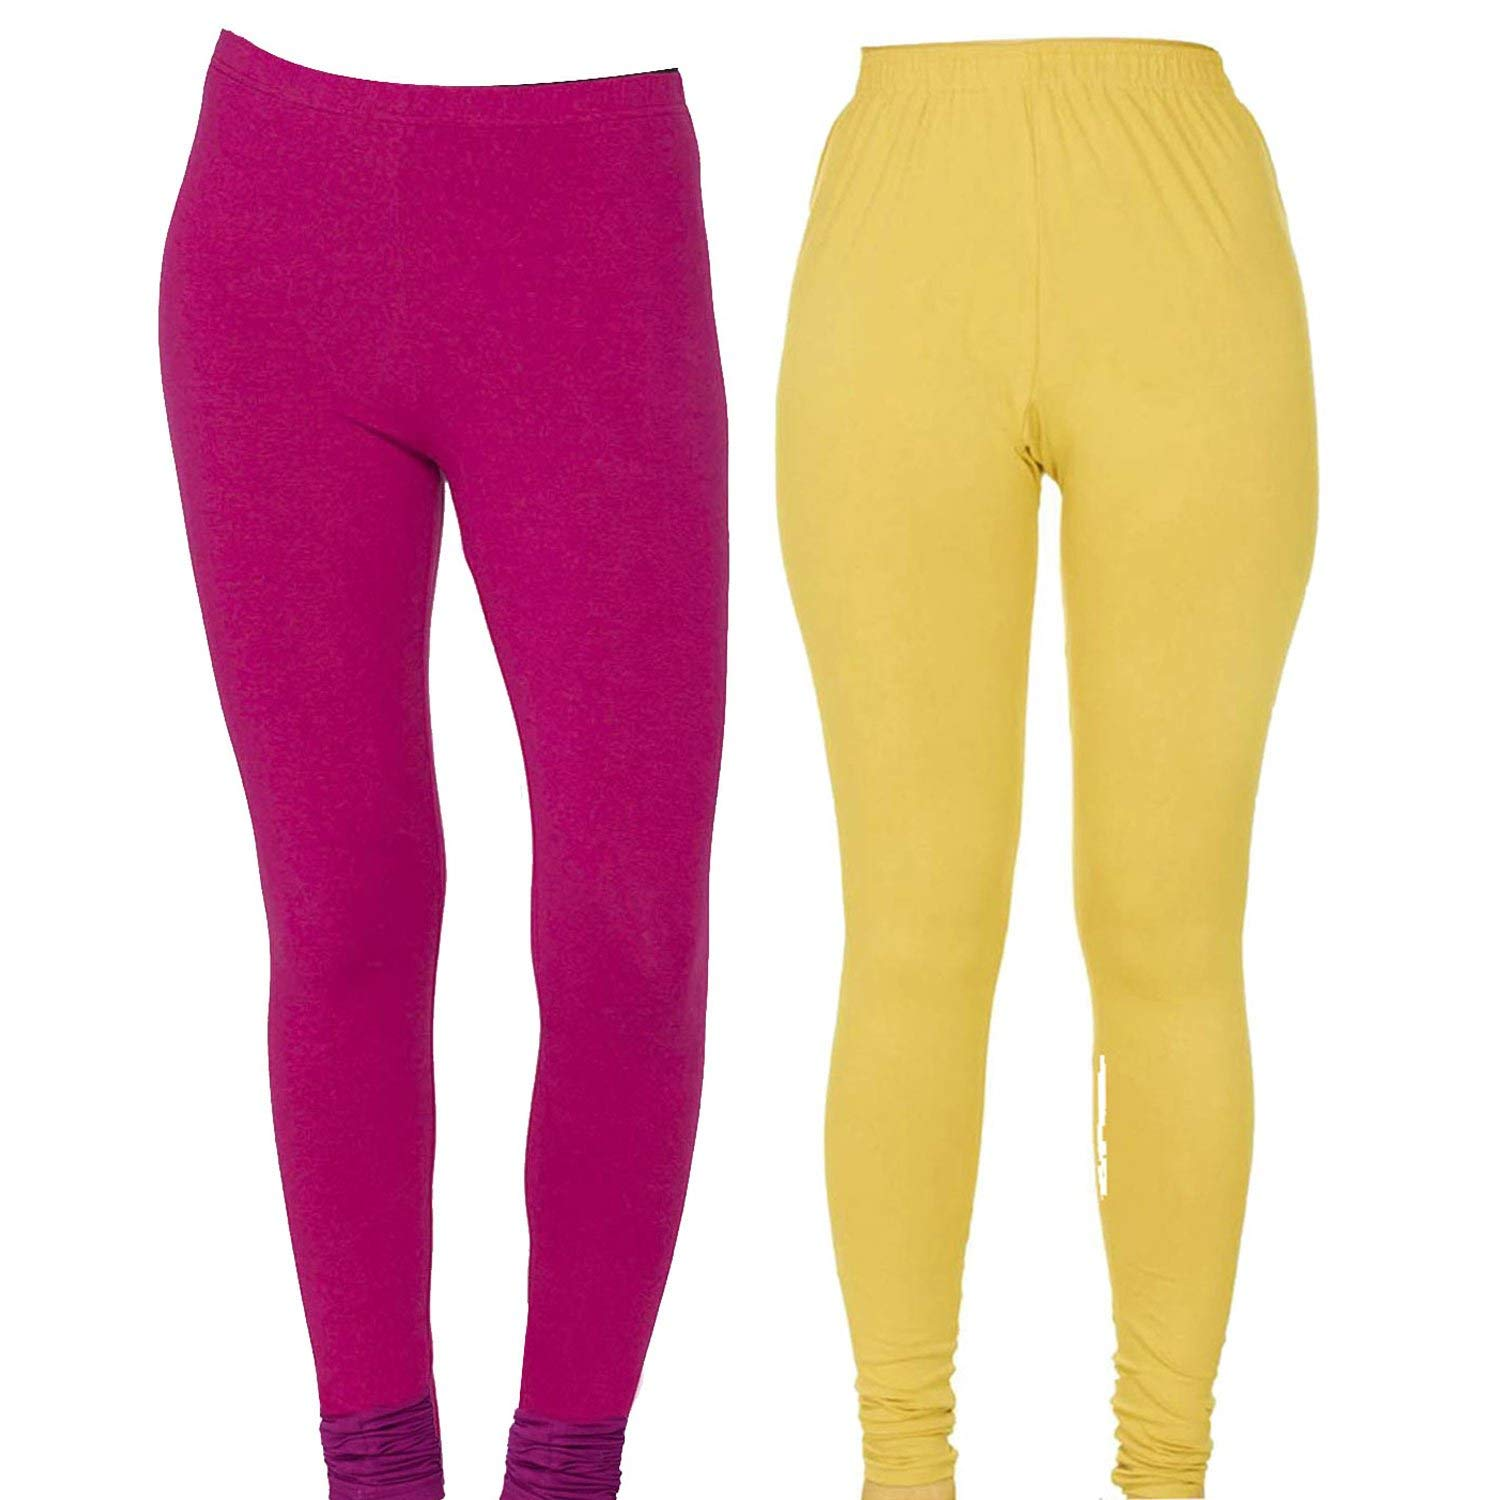 Set of 2 Magenta and Yellow Women's Solid Lycra Fabric Stretchable Workout Yoga Pants Designer Leggings